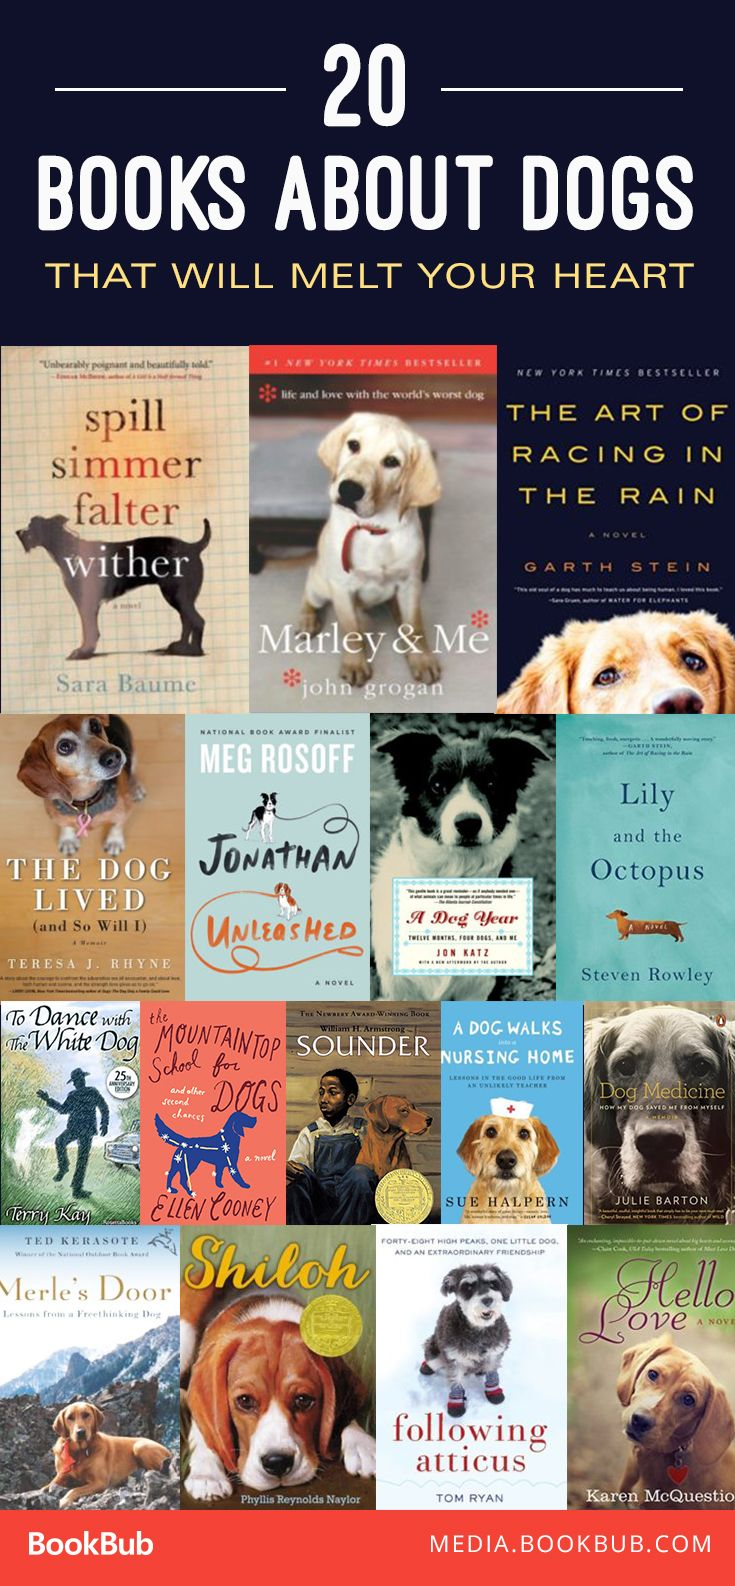 If you love dogs, check out these heart-warming books. Including Marley & Me by John Grogan.